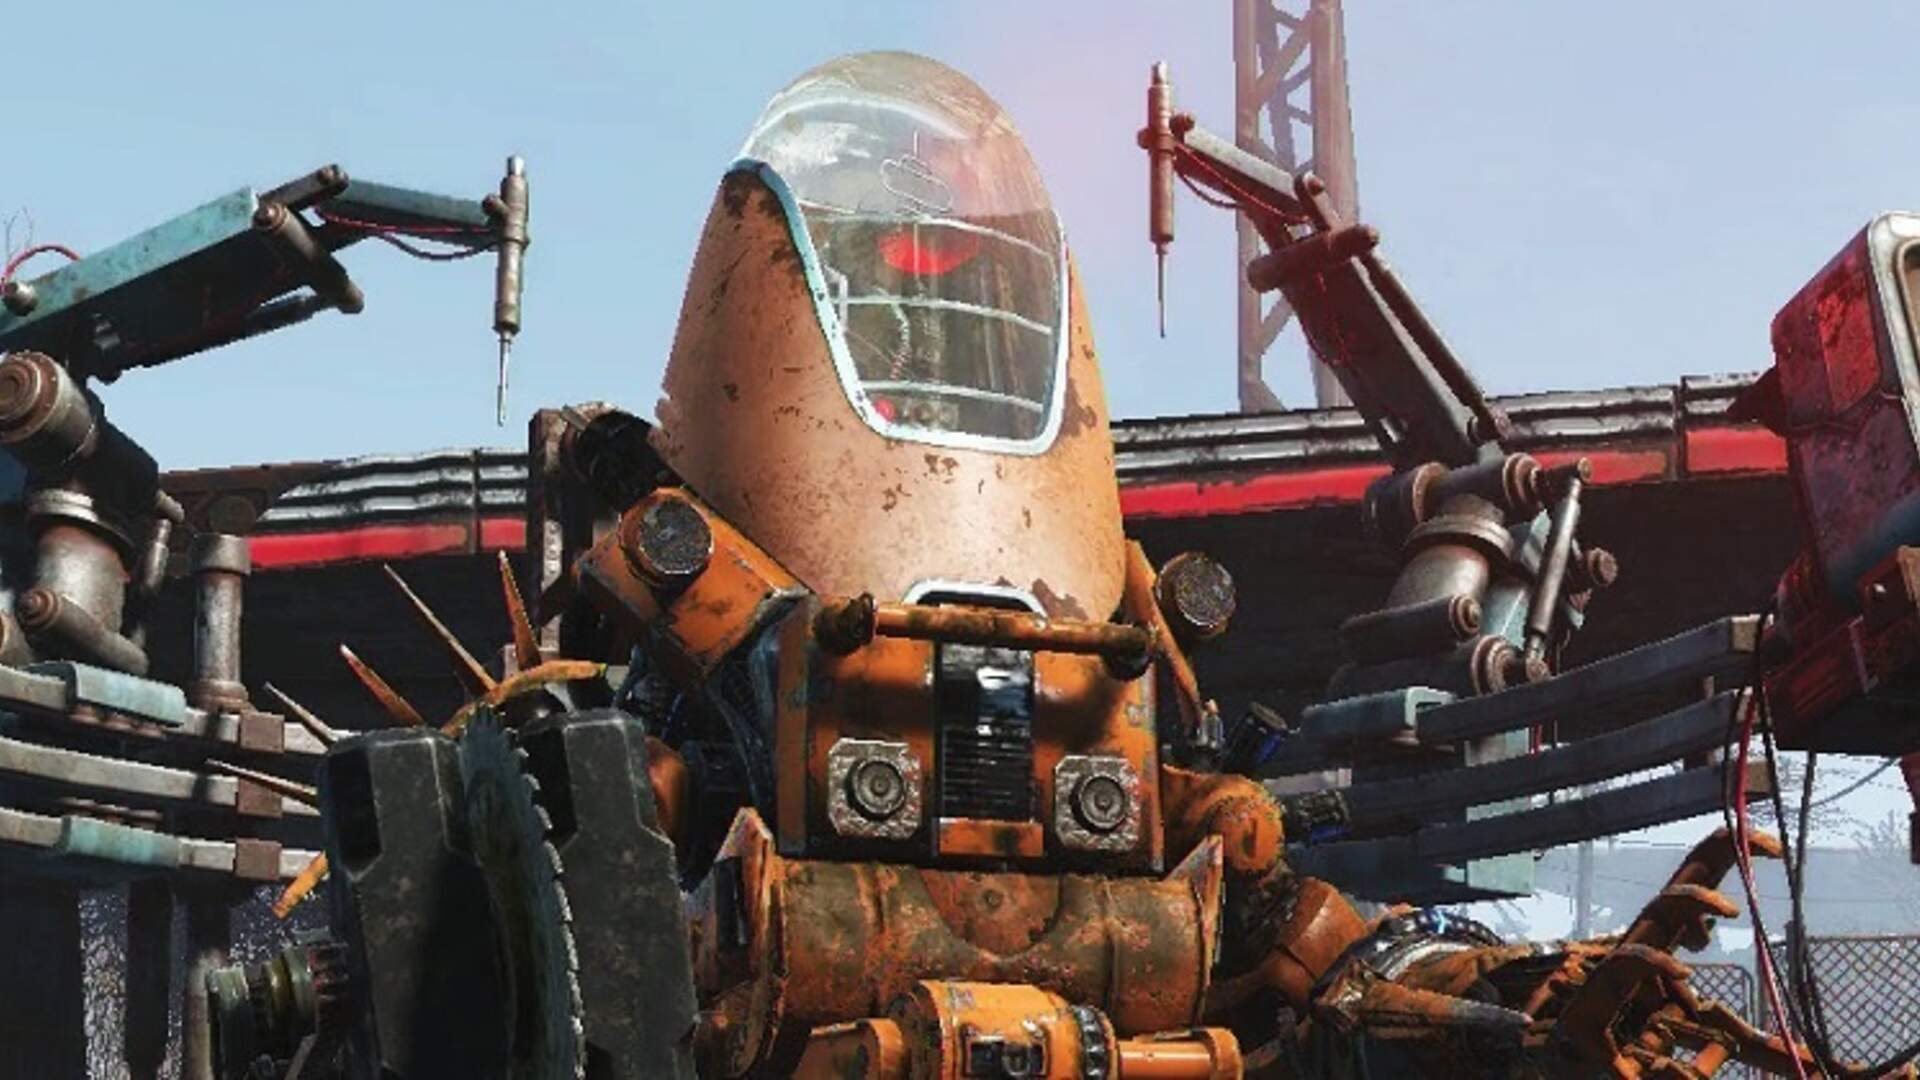 Fallout 4: How to Build Robots - Ada, Curie, Codsworth